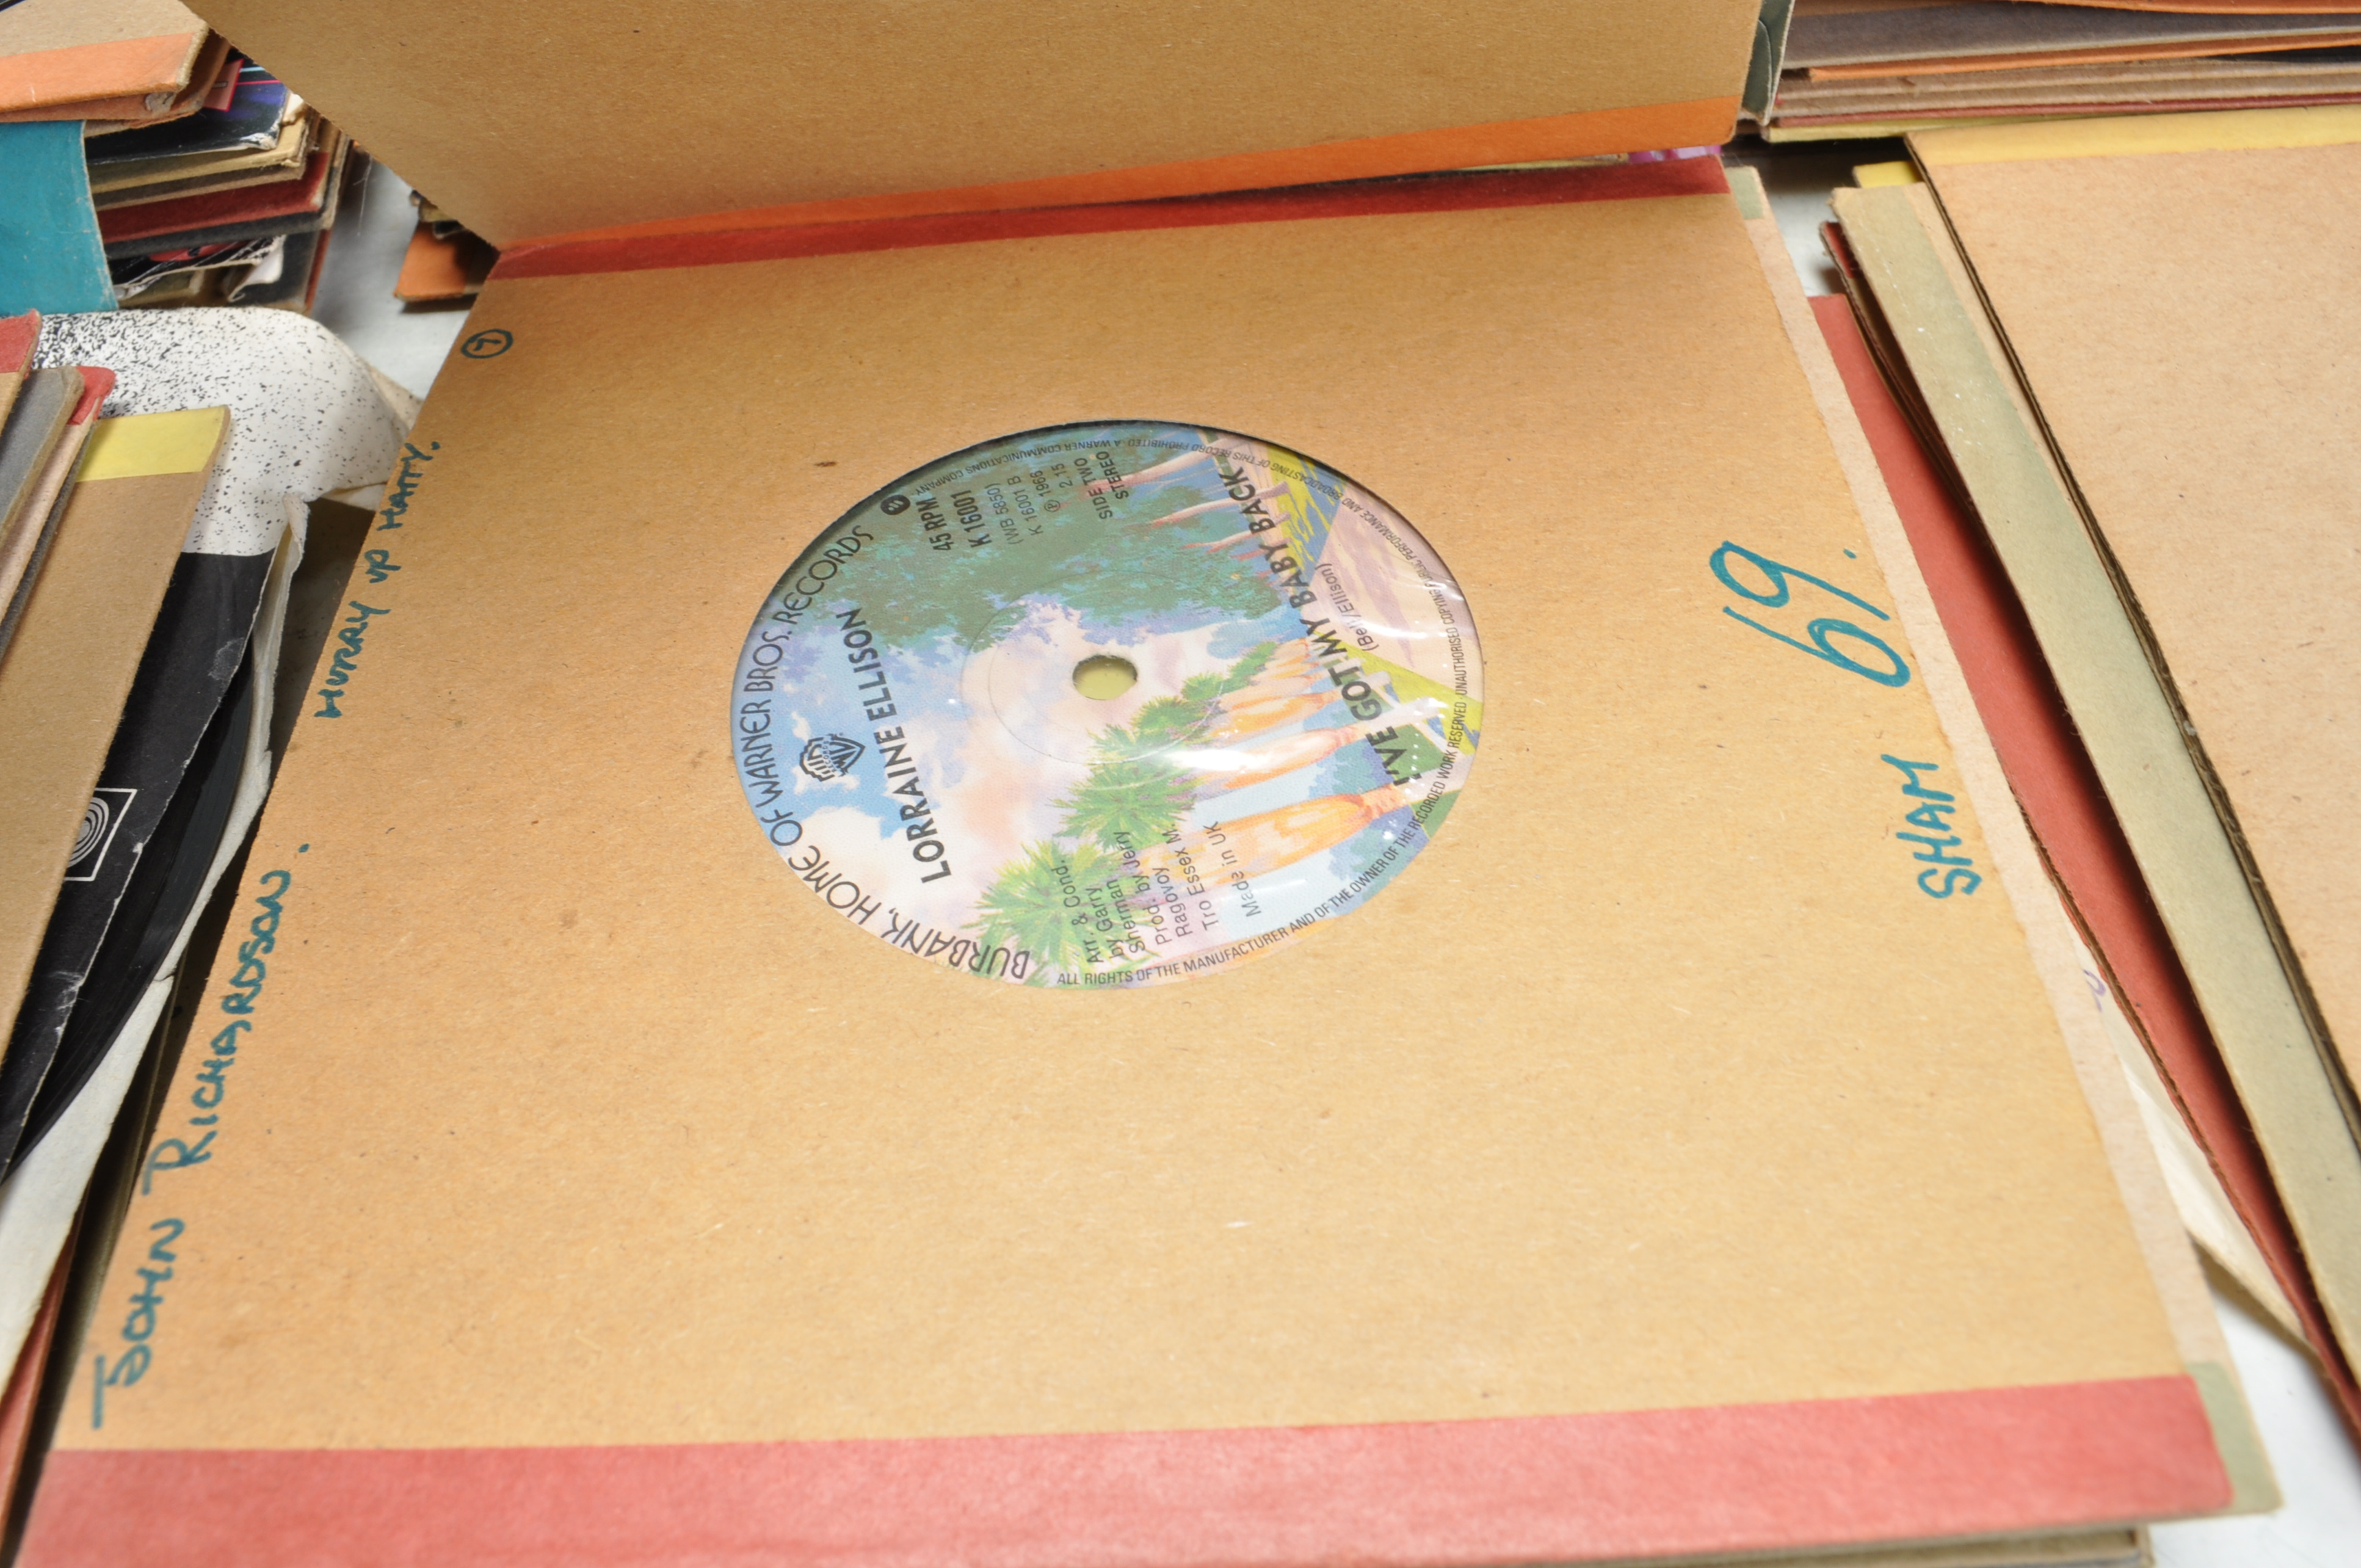 """LARGE COLLECTION OF VINTAGE VINYL 45RPM 7"""" SINGLES - Image 9 of 9"""